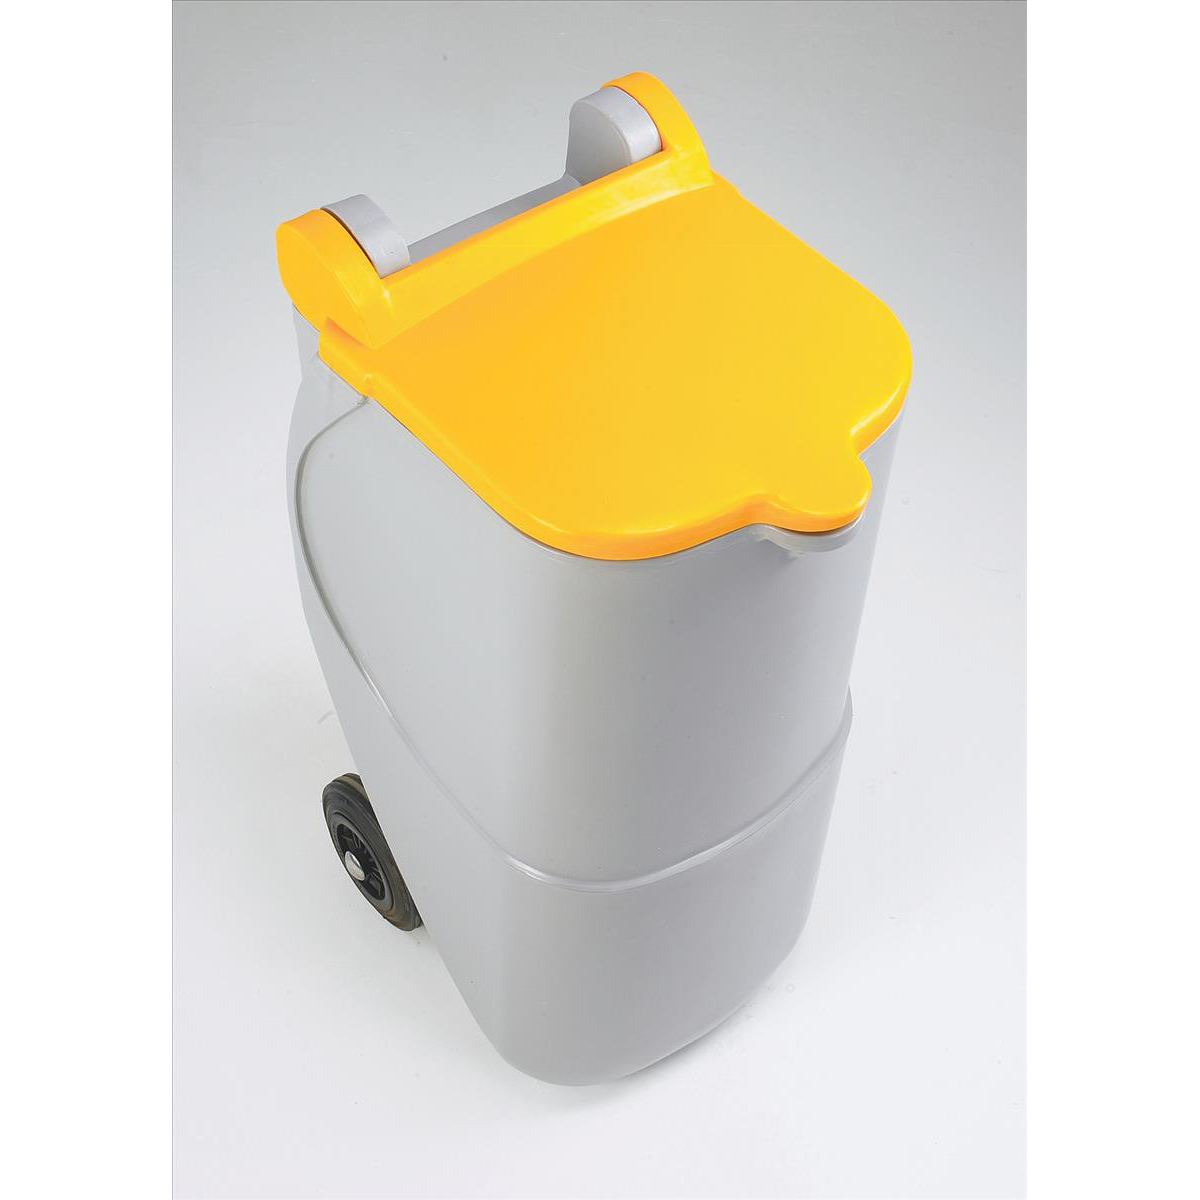 Designer Mobile Recycling Wheelie Bin for Plastic 90 Litre Capacity 420x500x930mm Yellow